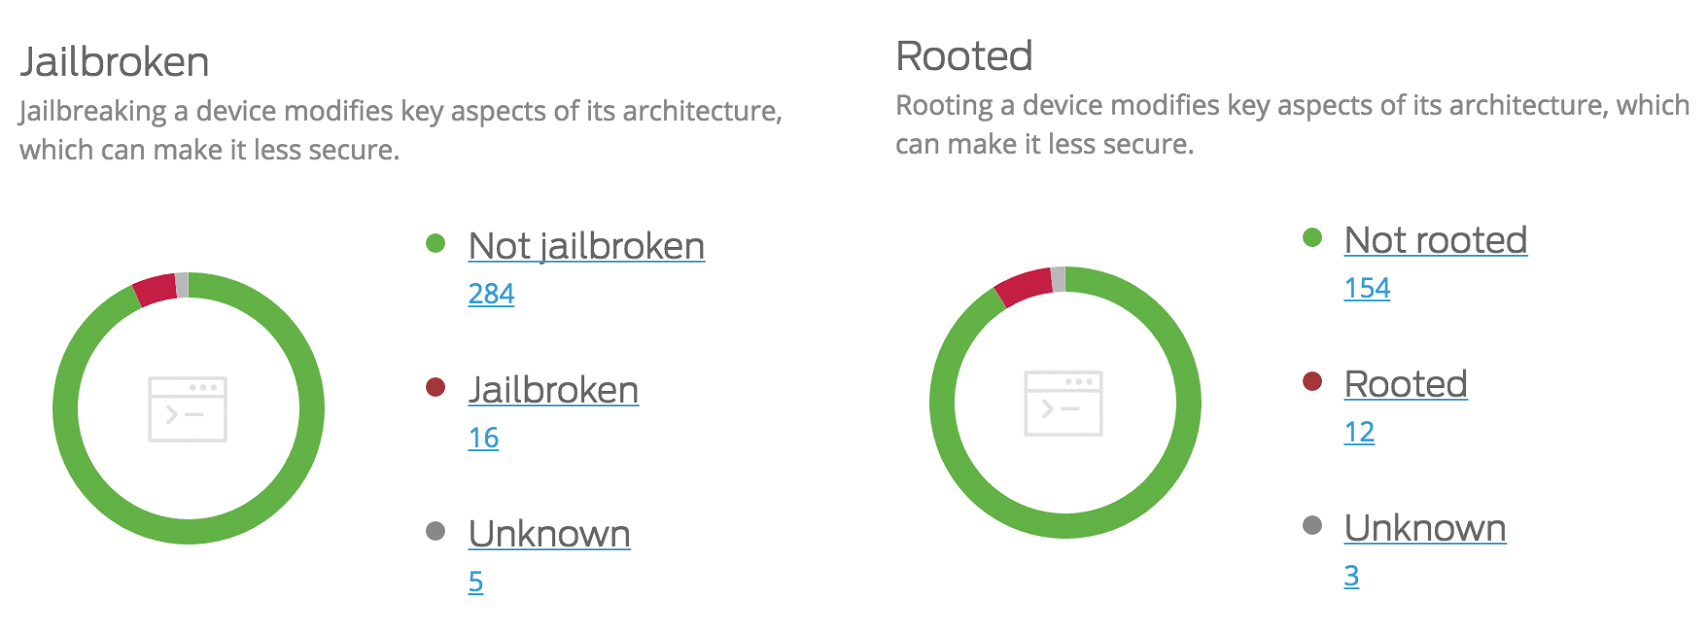 Jailbroken vs. Rooted Devices